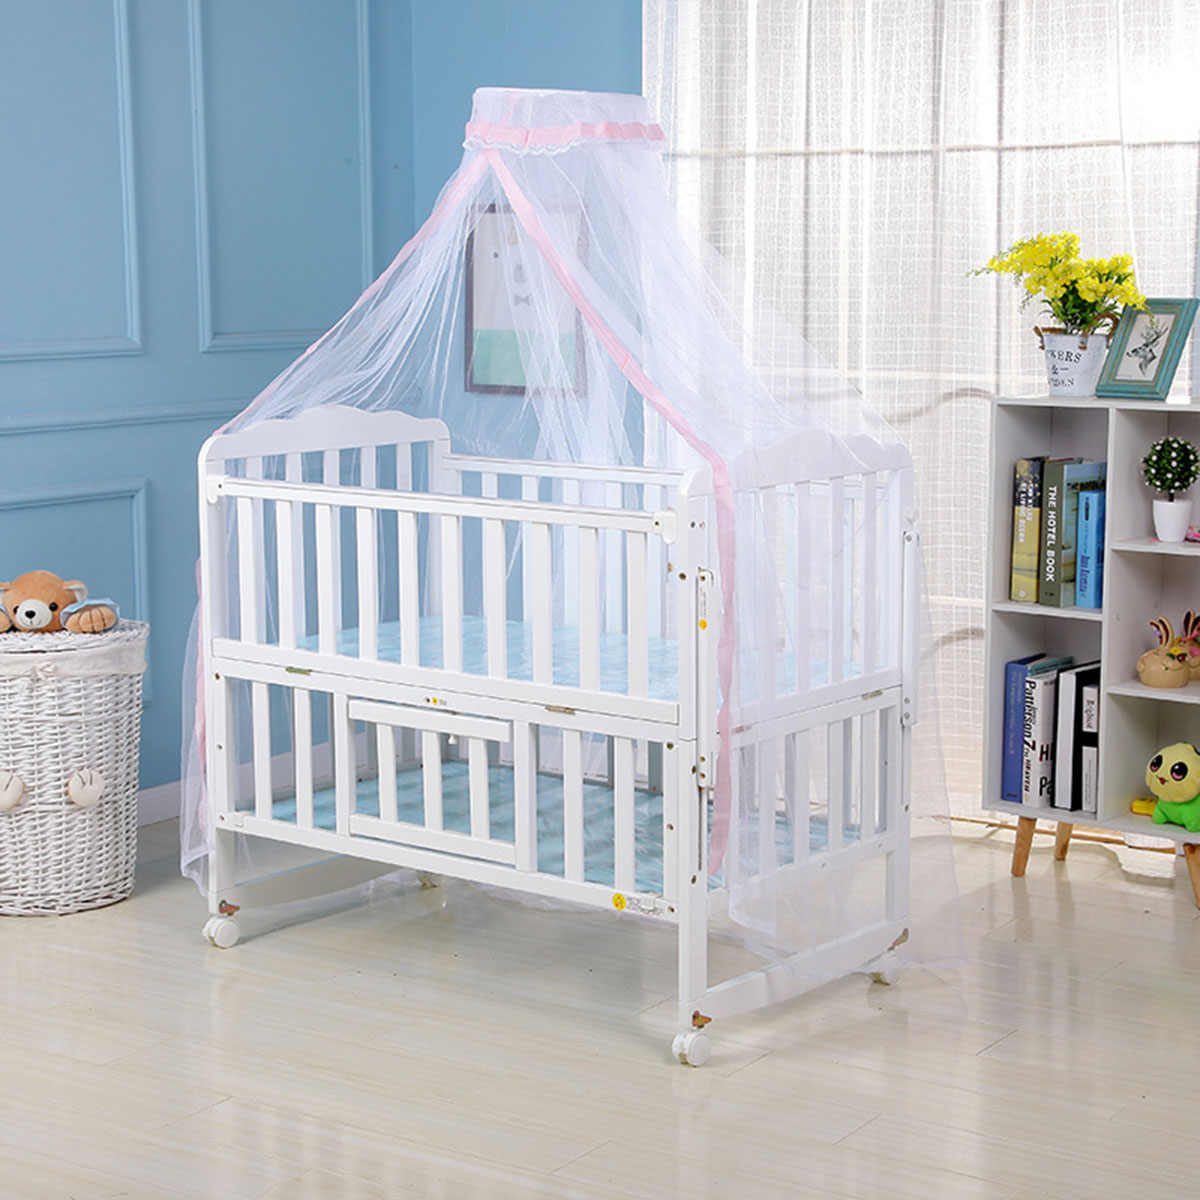 1* Mosquito Net Hot Selling Baby Bed Mosquito Net Mesh Dome Curtain Net for Toddler Crib Cot Canopy 2019 Blue Pink Yellow Color